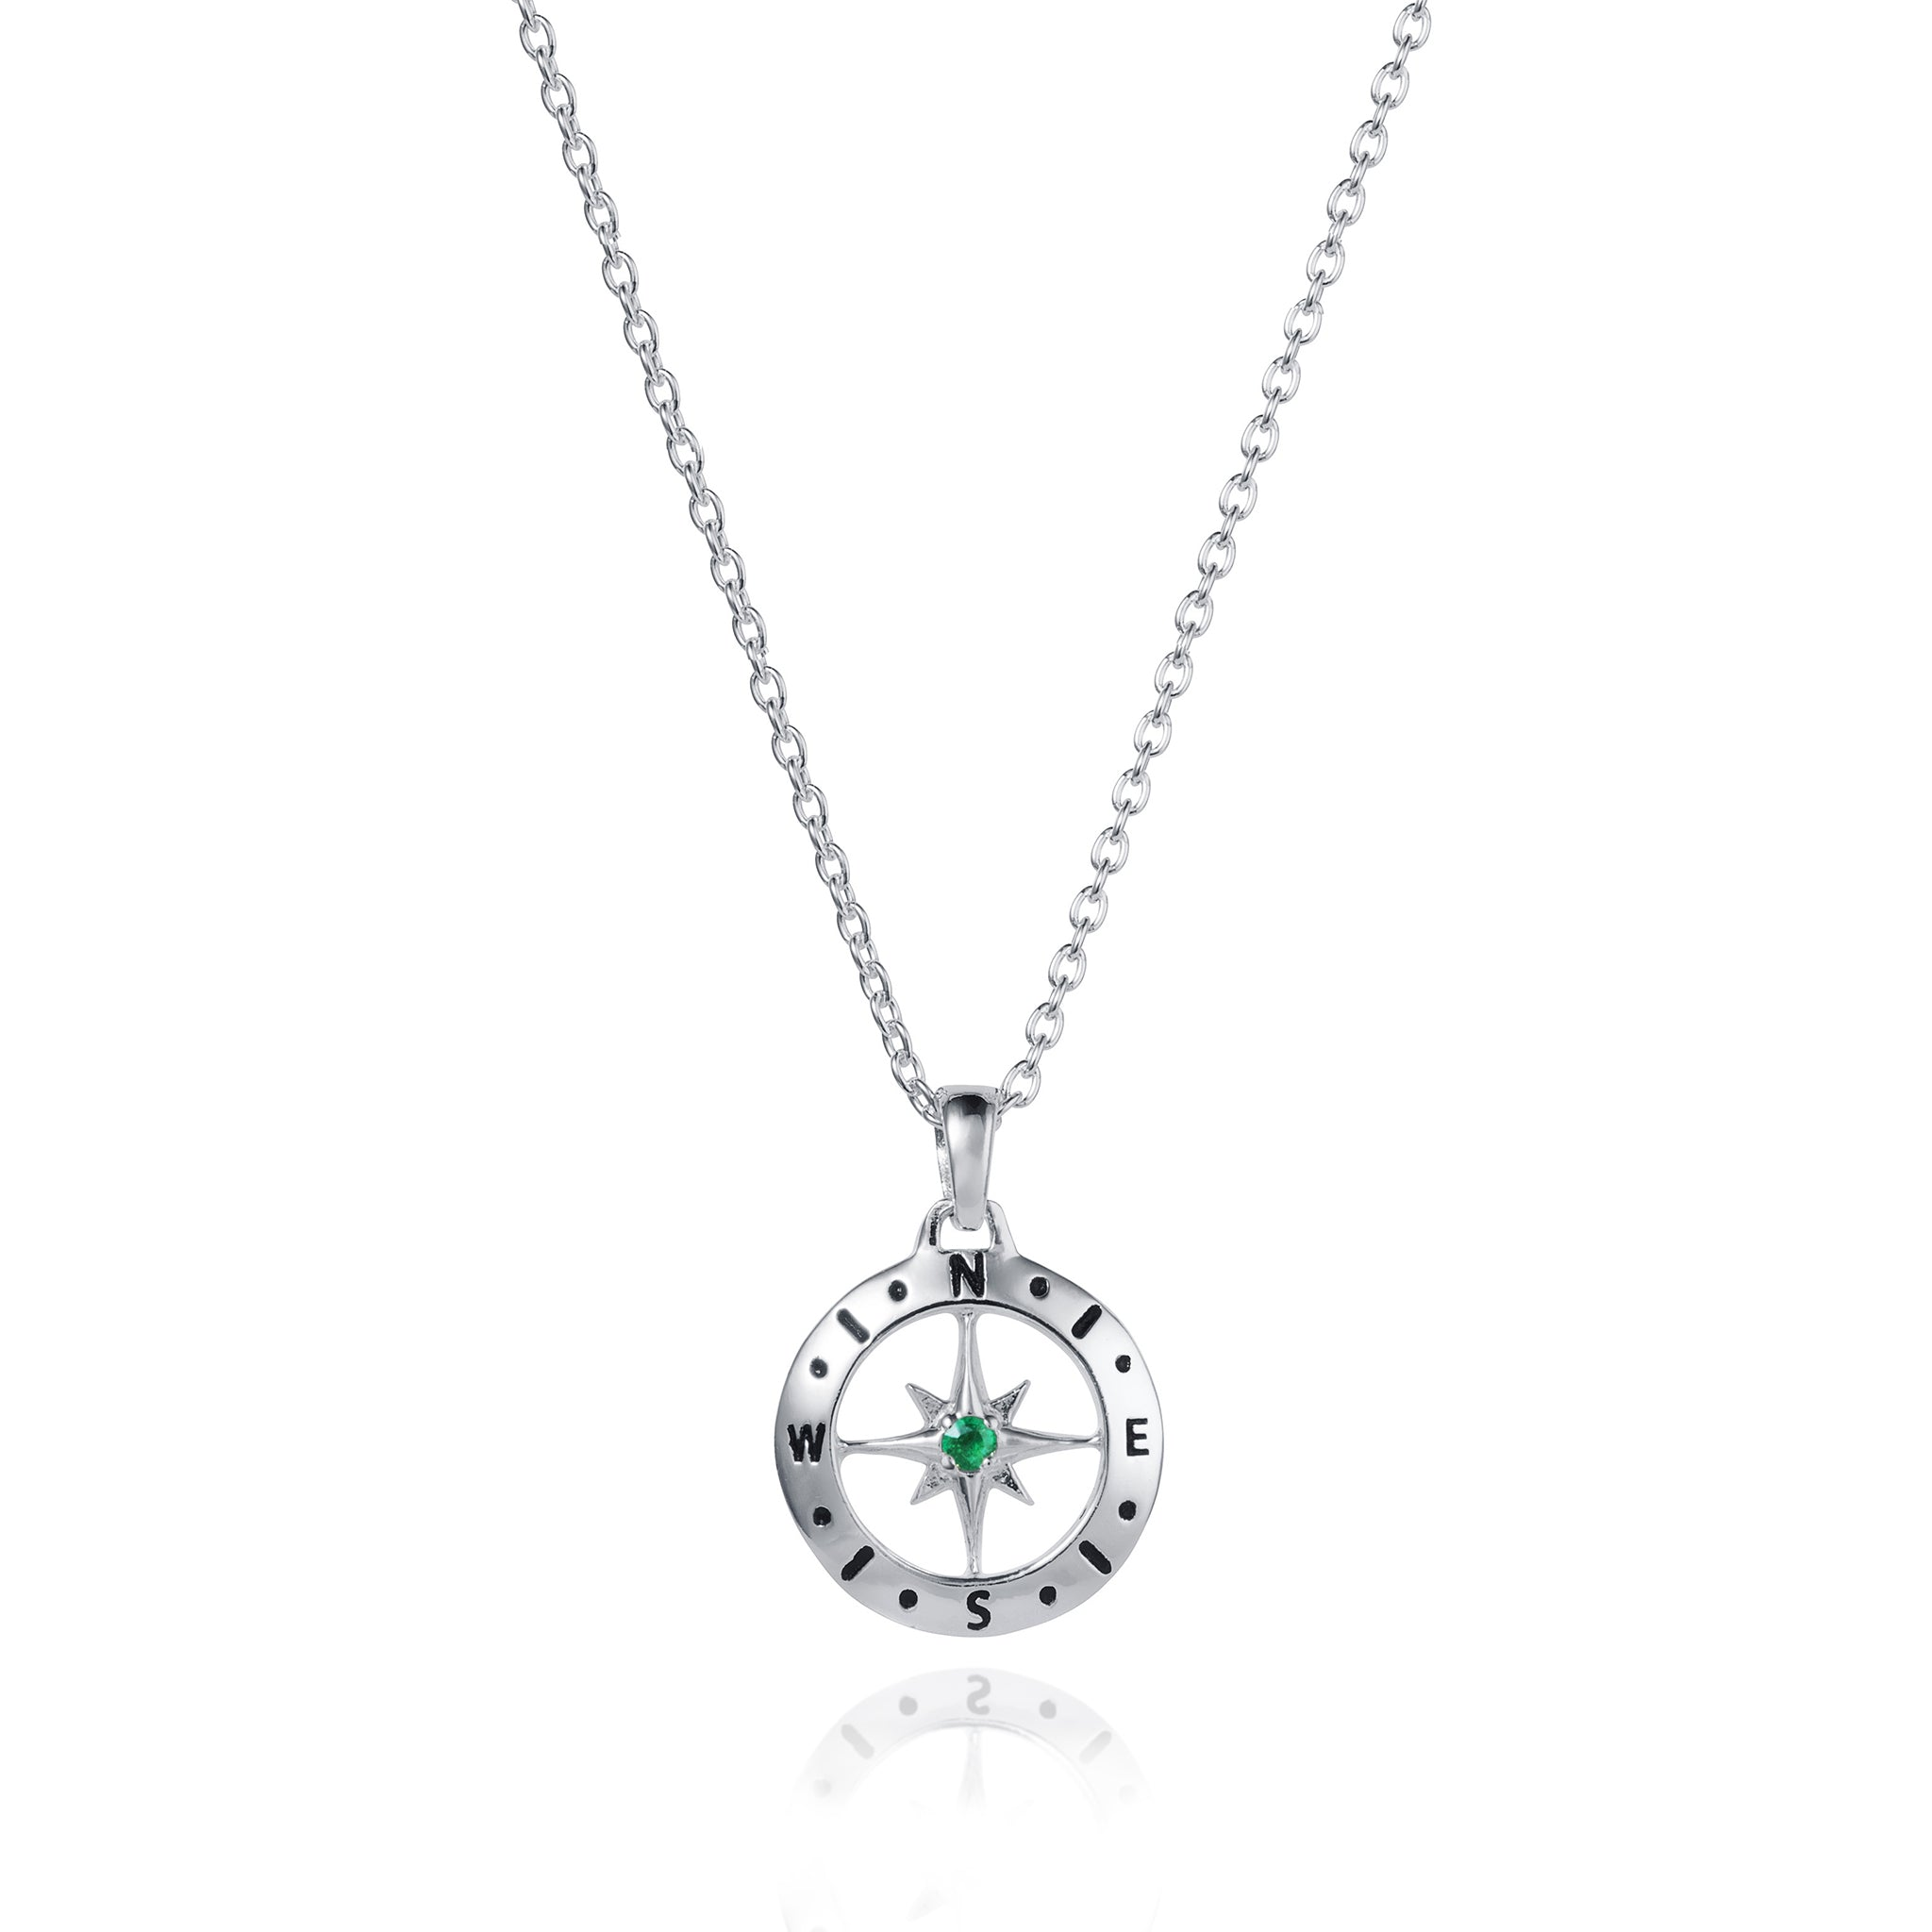 May Love's Compass Birthstone Silver & Emerald Necklace